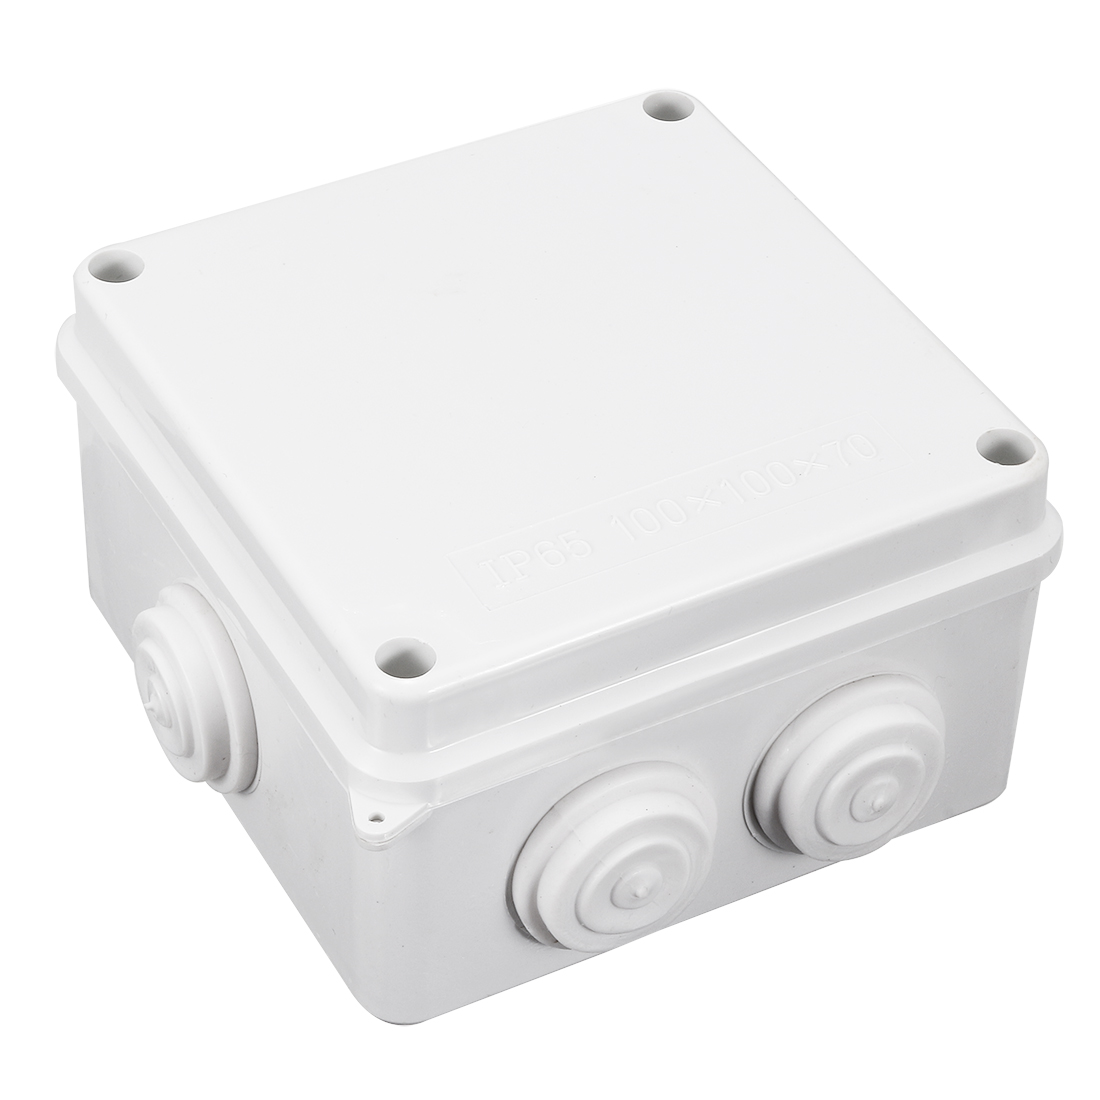 "3.94"" x 3.94"" x 2.76""(100mmx100mmx70mm) ABS Junction Box Universal Project Enclosure"